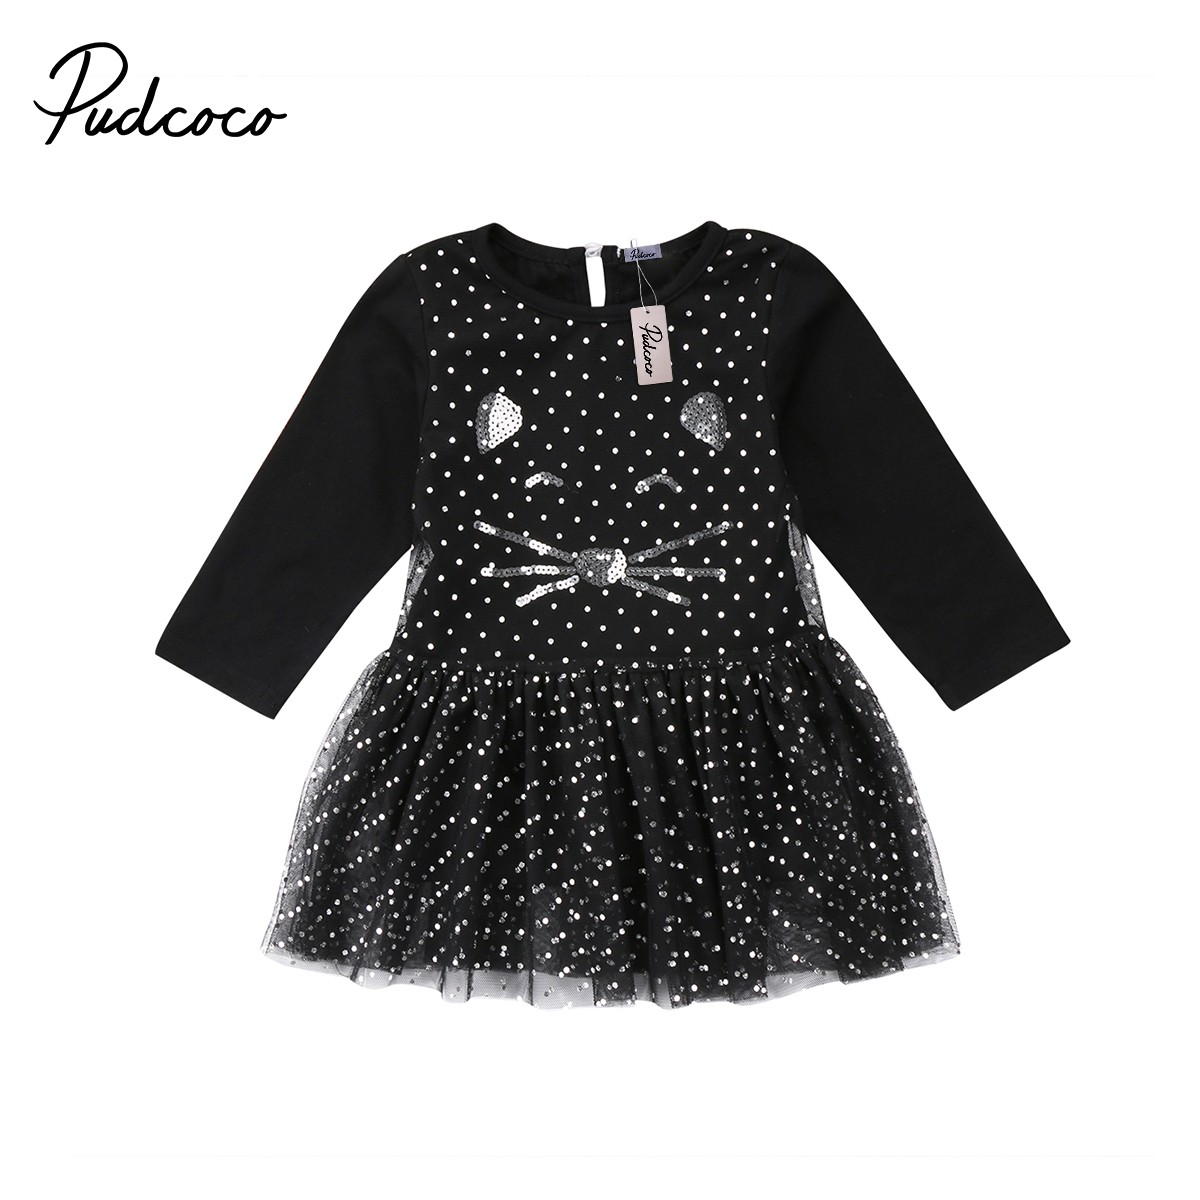 2018 Brand New Toddler Infant Child Kids Baby Girls Princess Cartoon Tulle Long Sleeve Dress Sequin Dot Cat Chiffon Clothes 1-6T